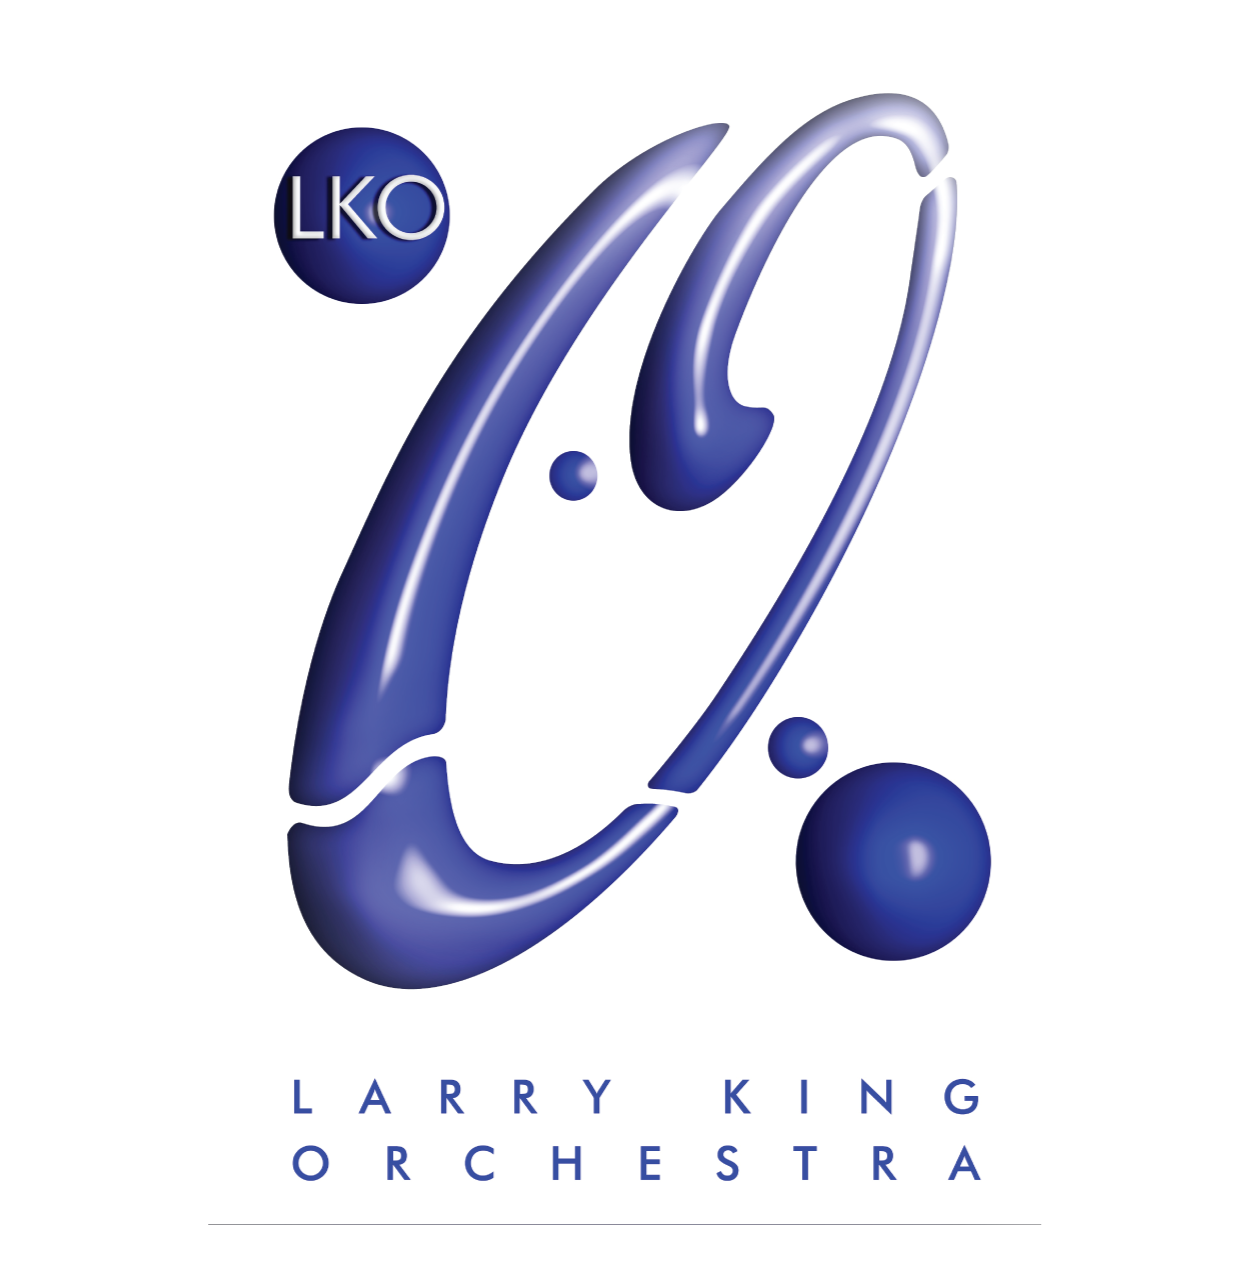 Larry King Orchestra